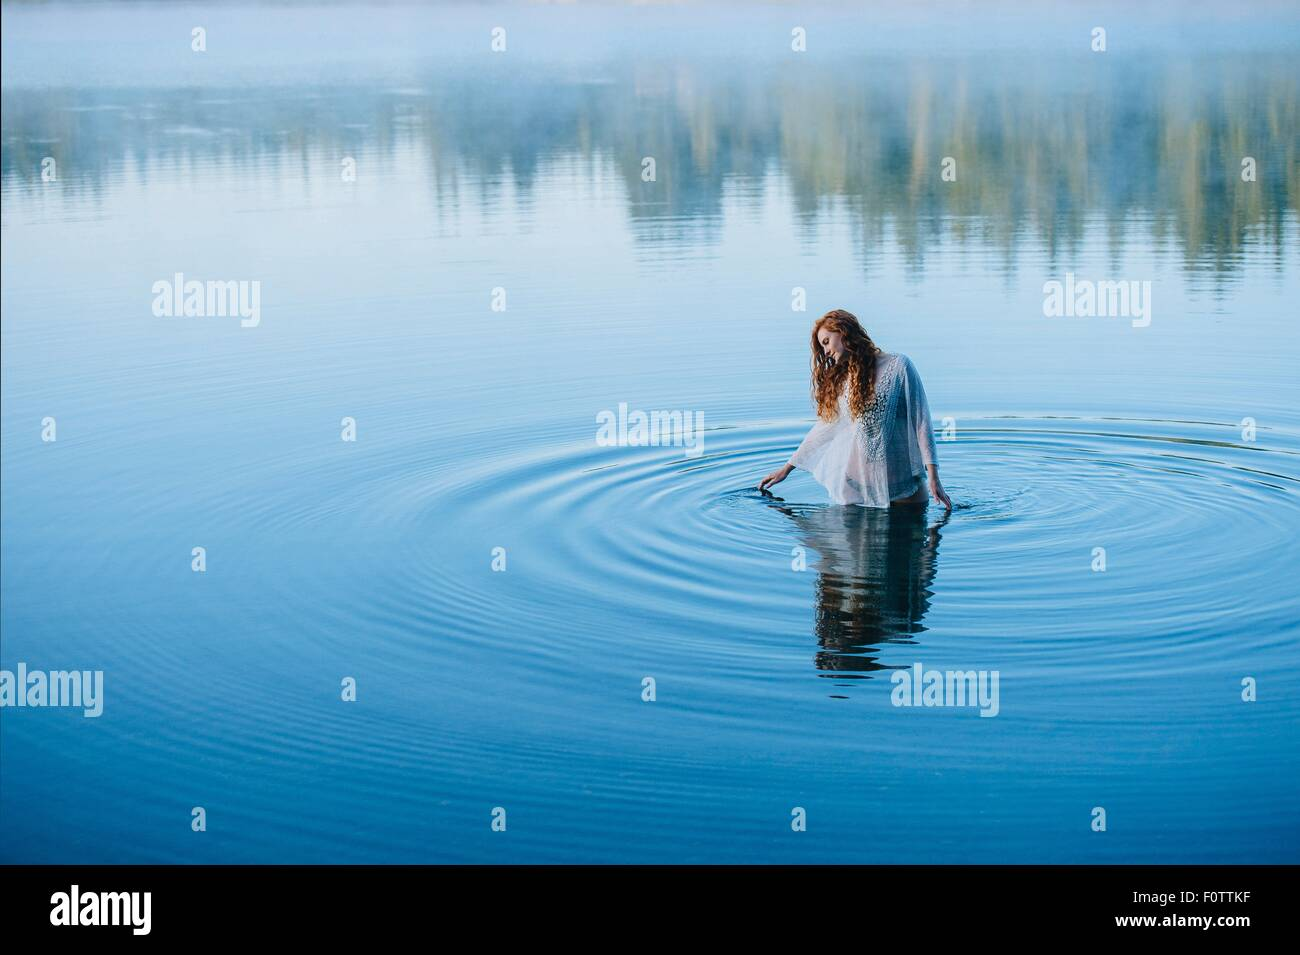 Young woman standing in middle of lake ripples looking down - Stock Image